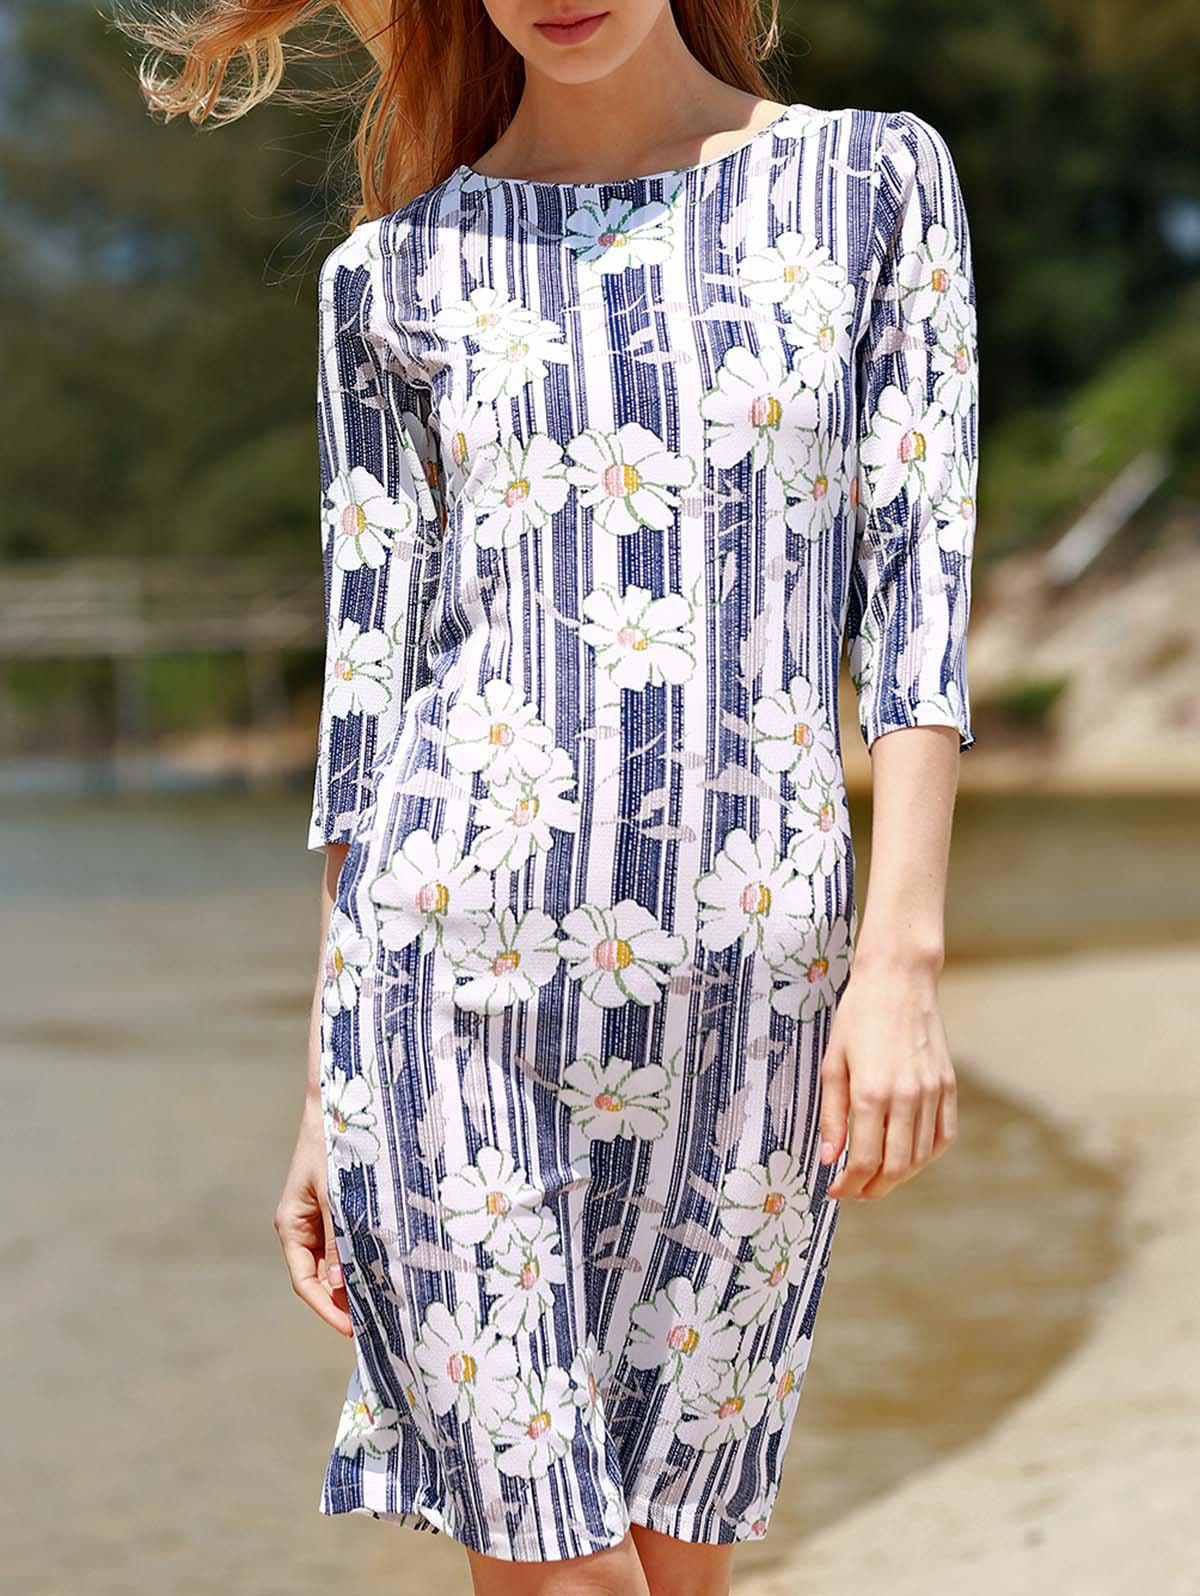 Stylish Round Neck 3/4 Sleeve Floral Print Bodycon Women's Dress - BLUE M